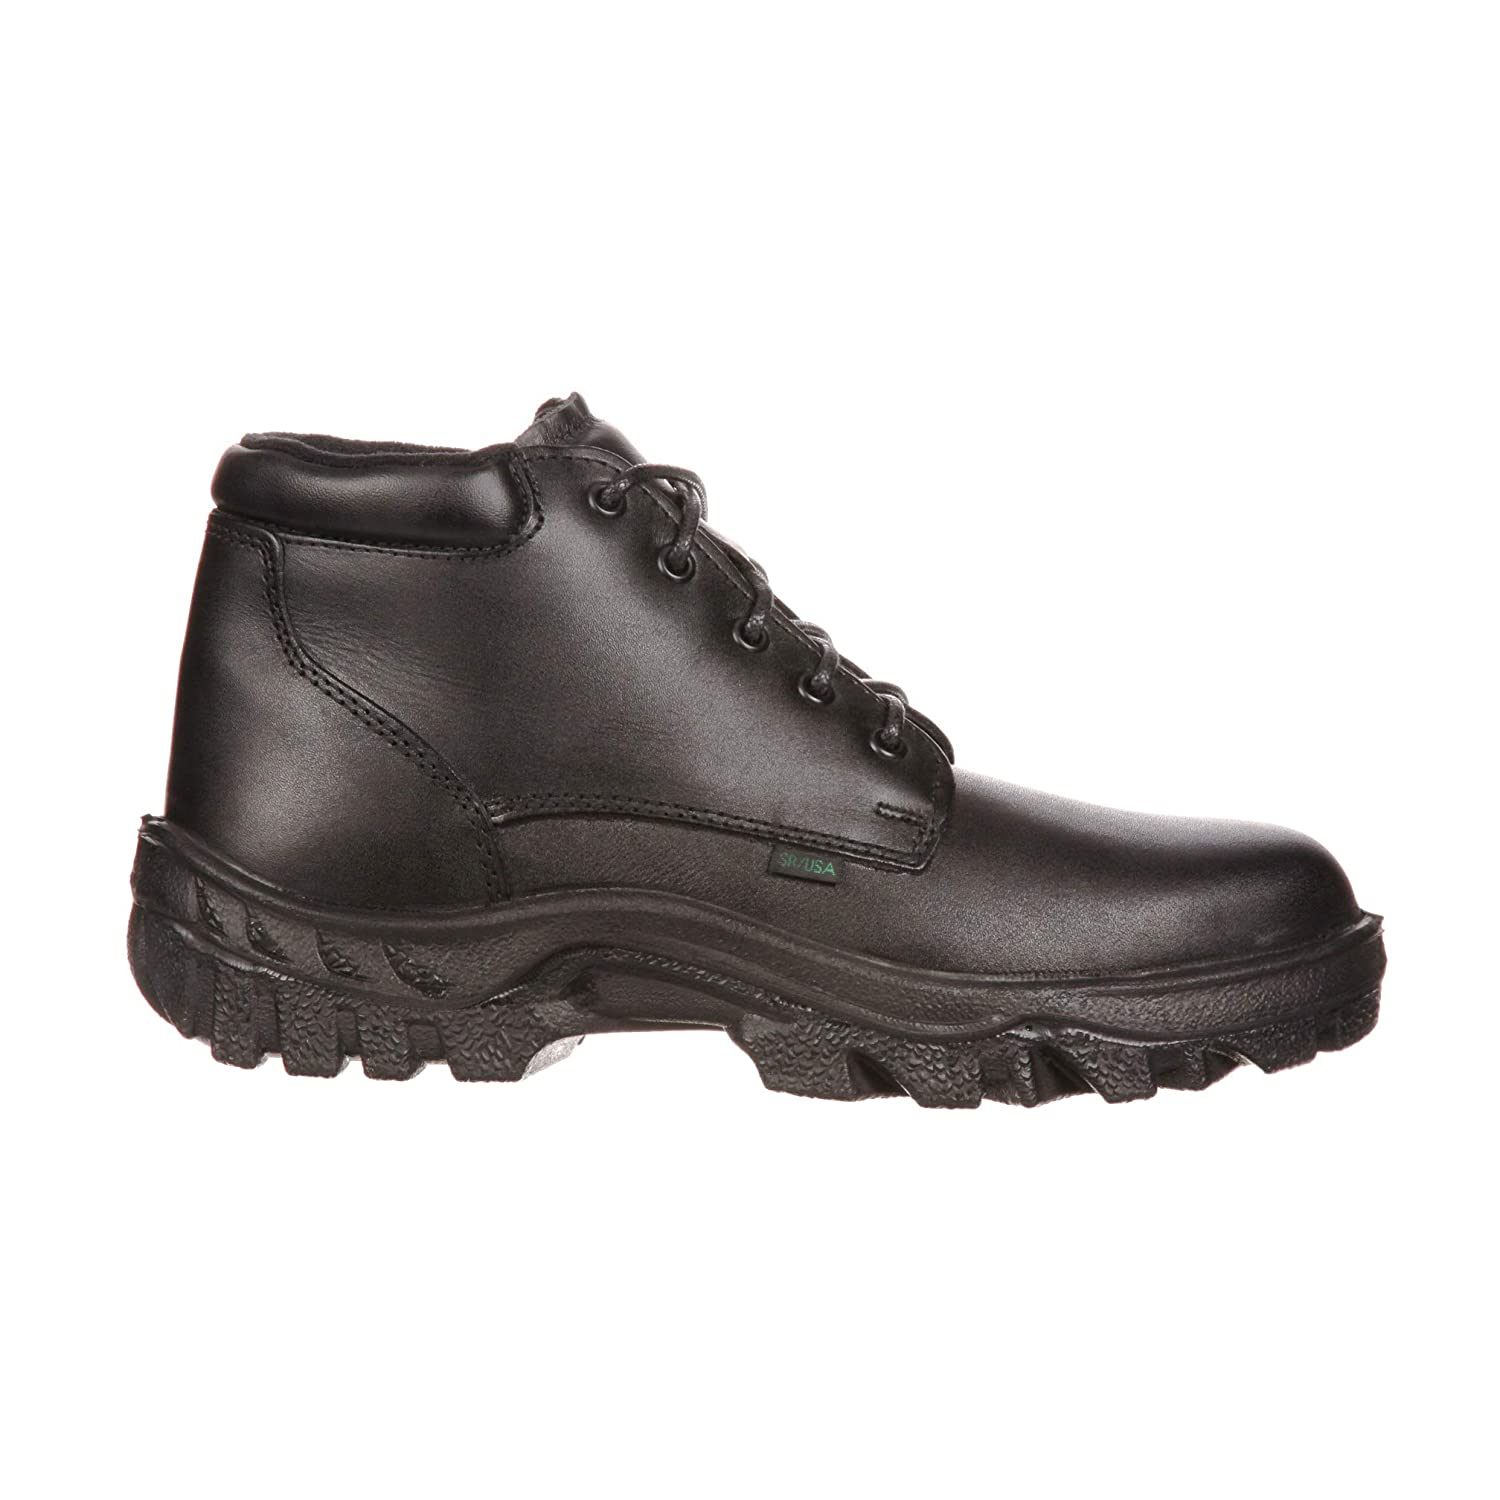 bf04a886 Amazon.com | Rocky Men's TMC Postal Approved Water-Resistant Duty ...